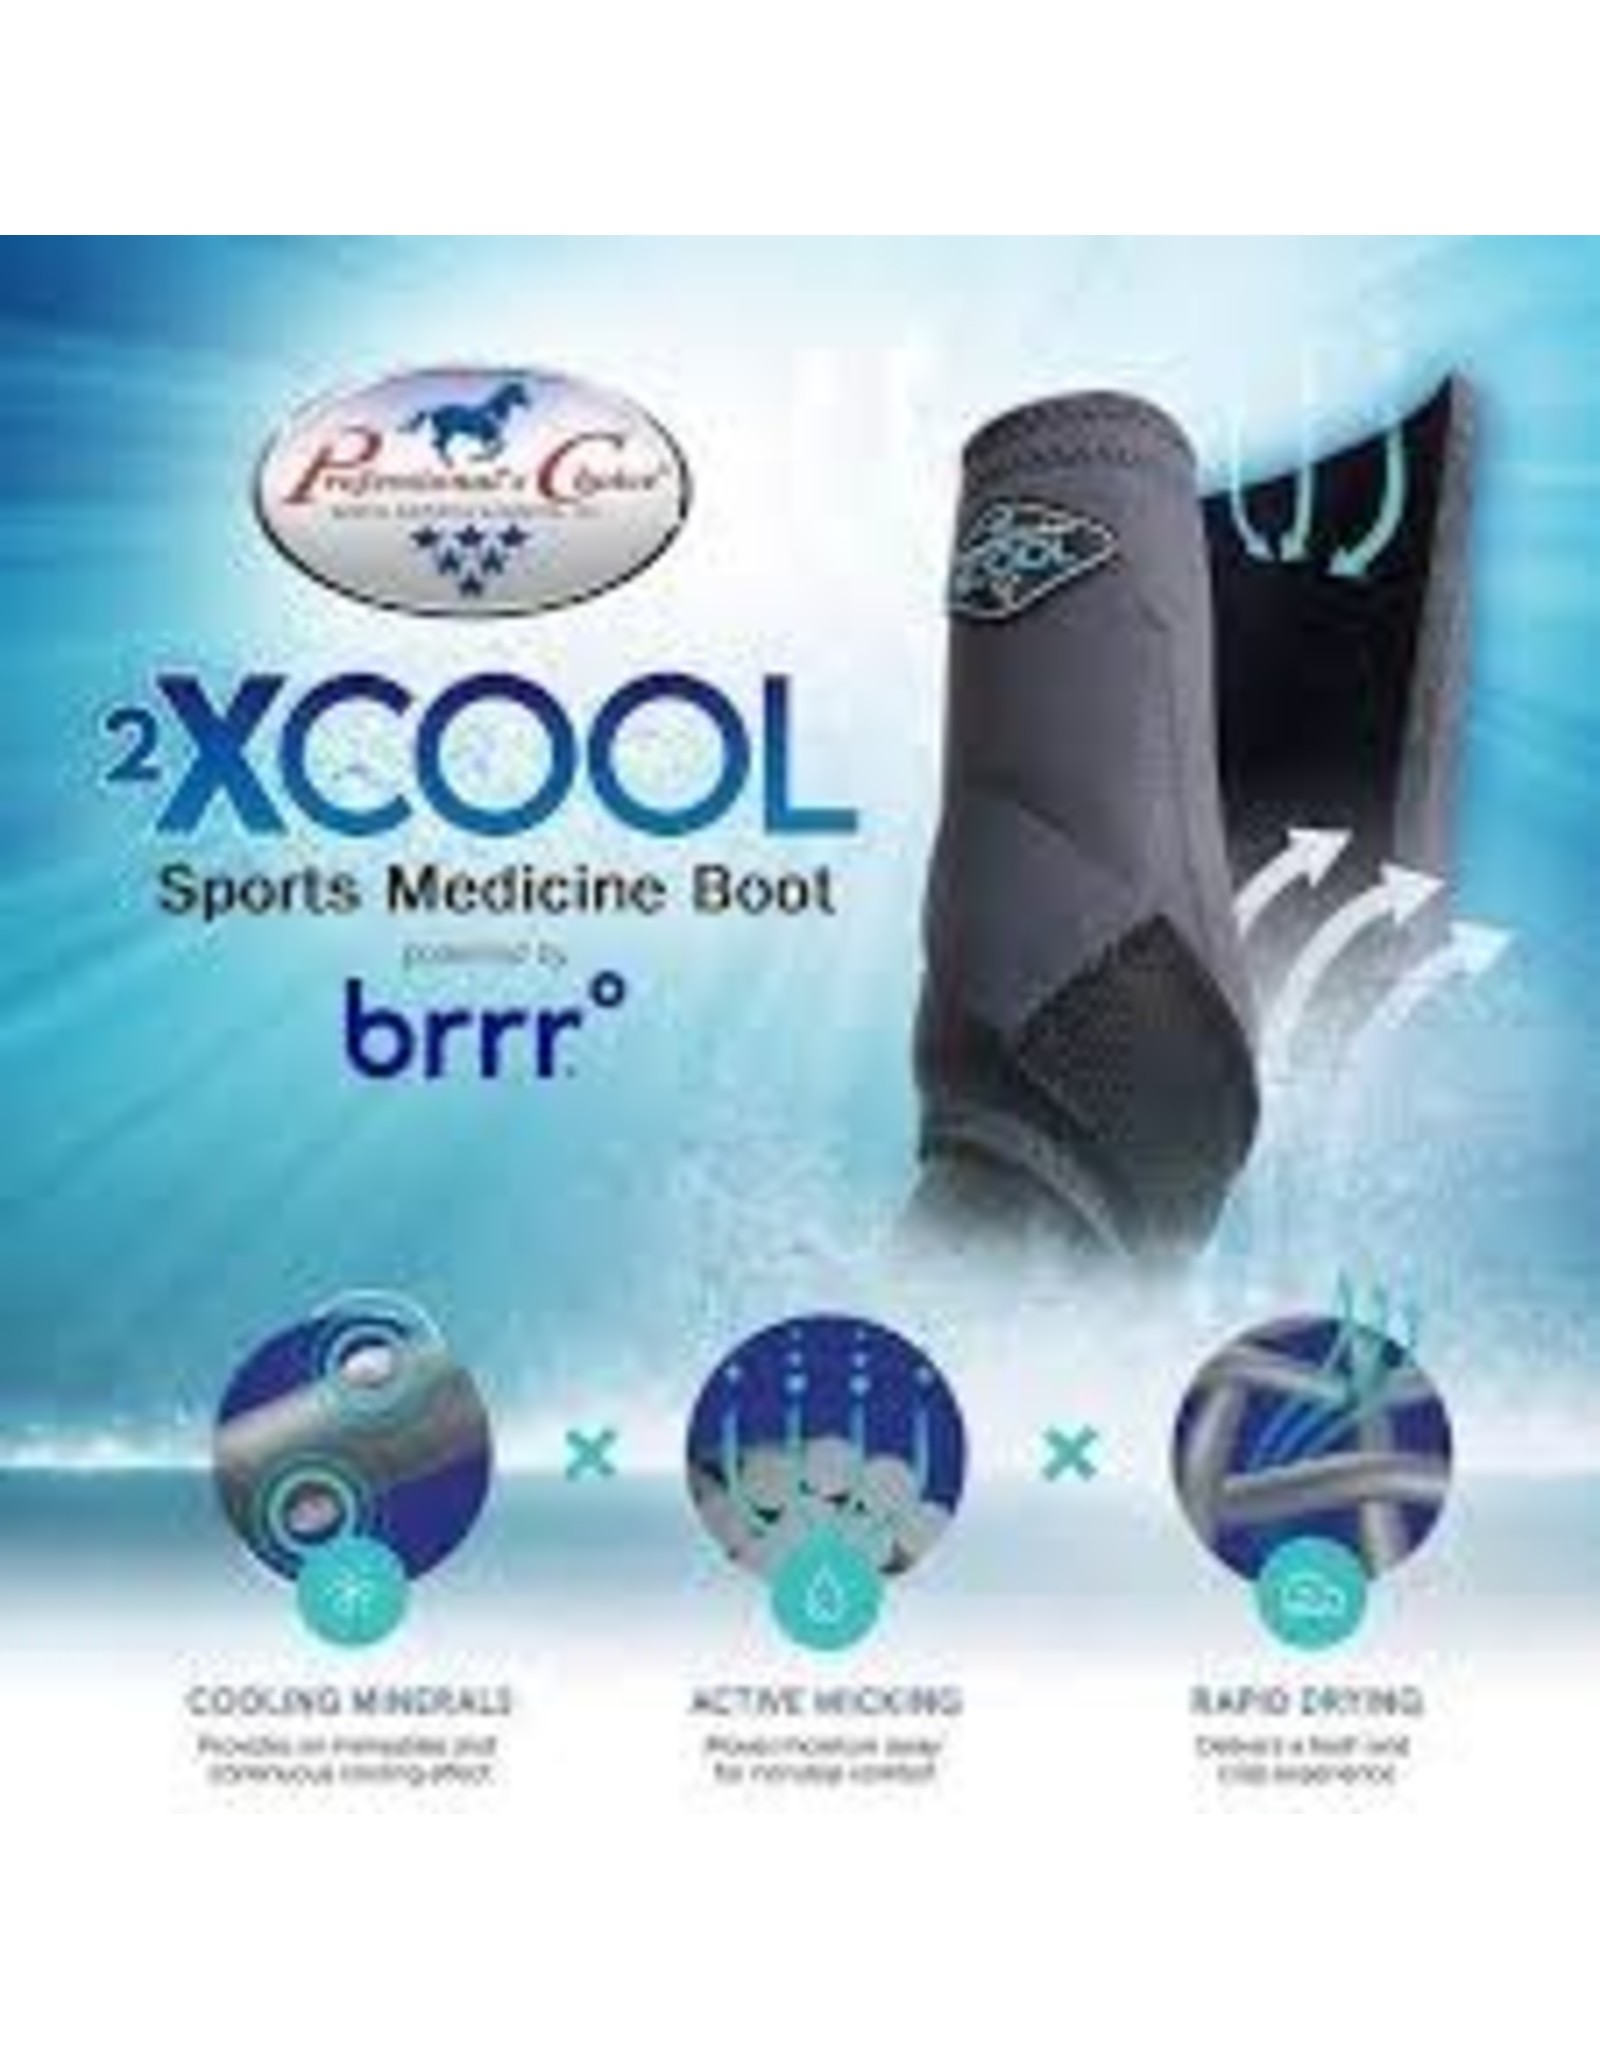 2XCOOL - Sports Medicine Boots - Wine - *pack of 4*  Large - #XC4L-Wine